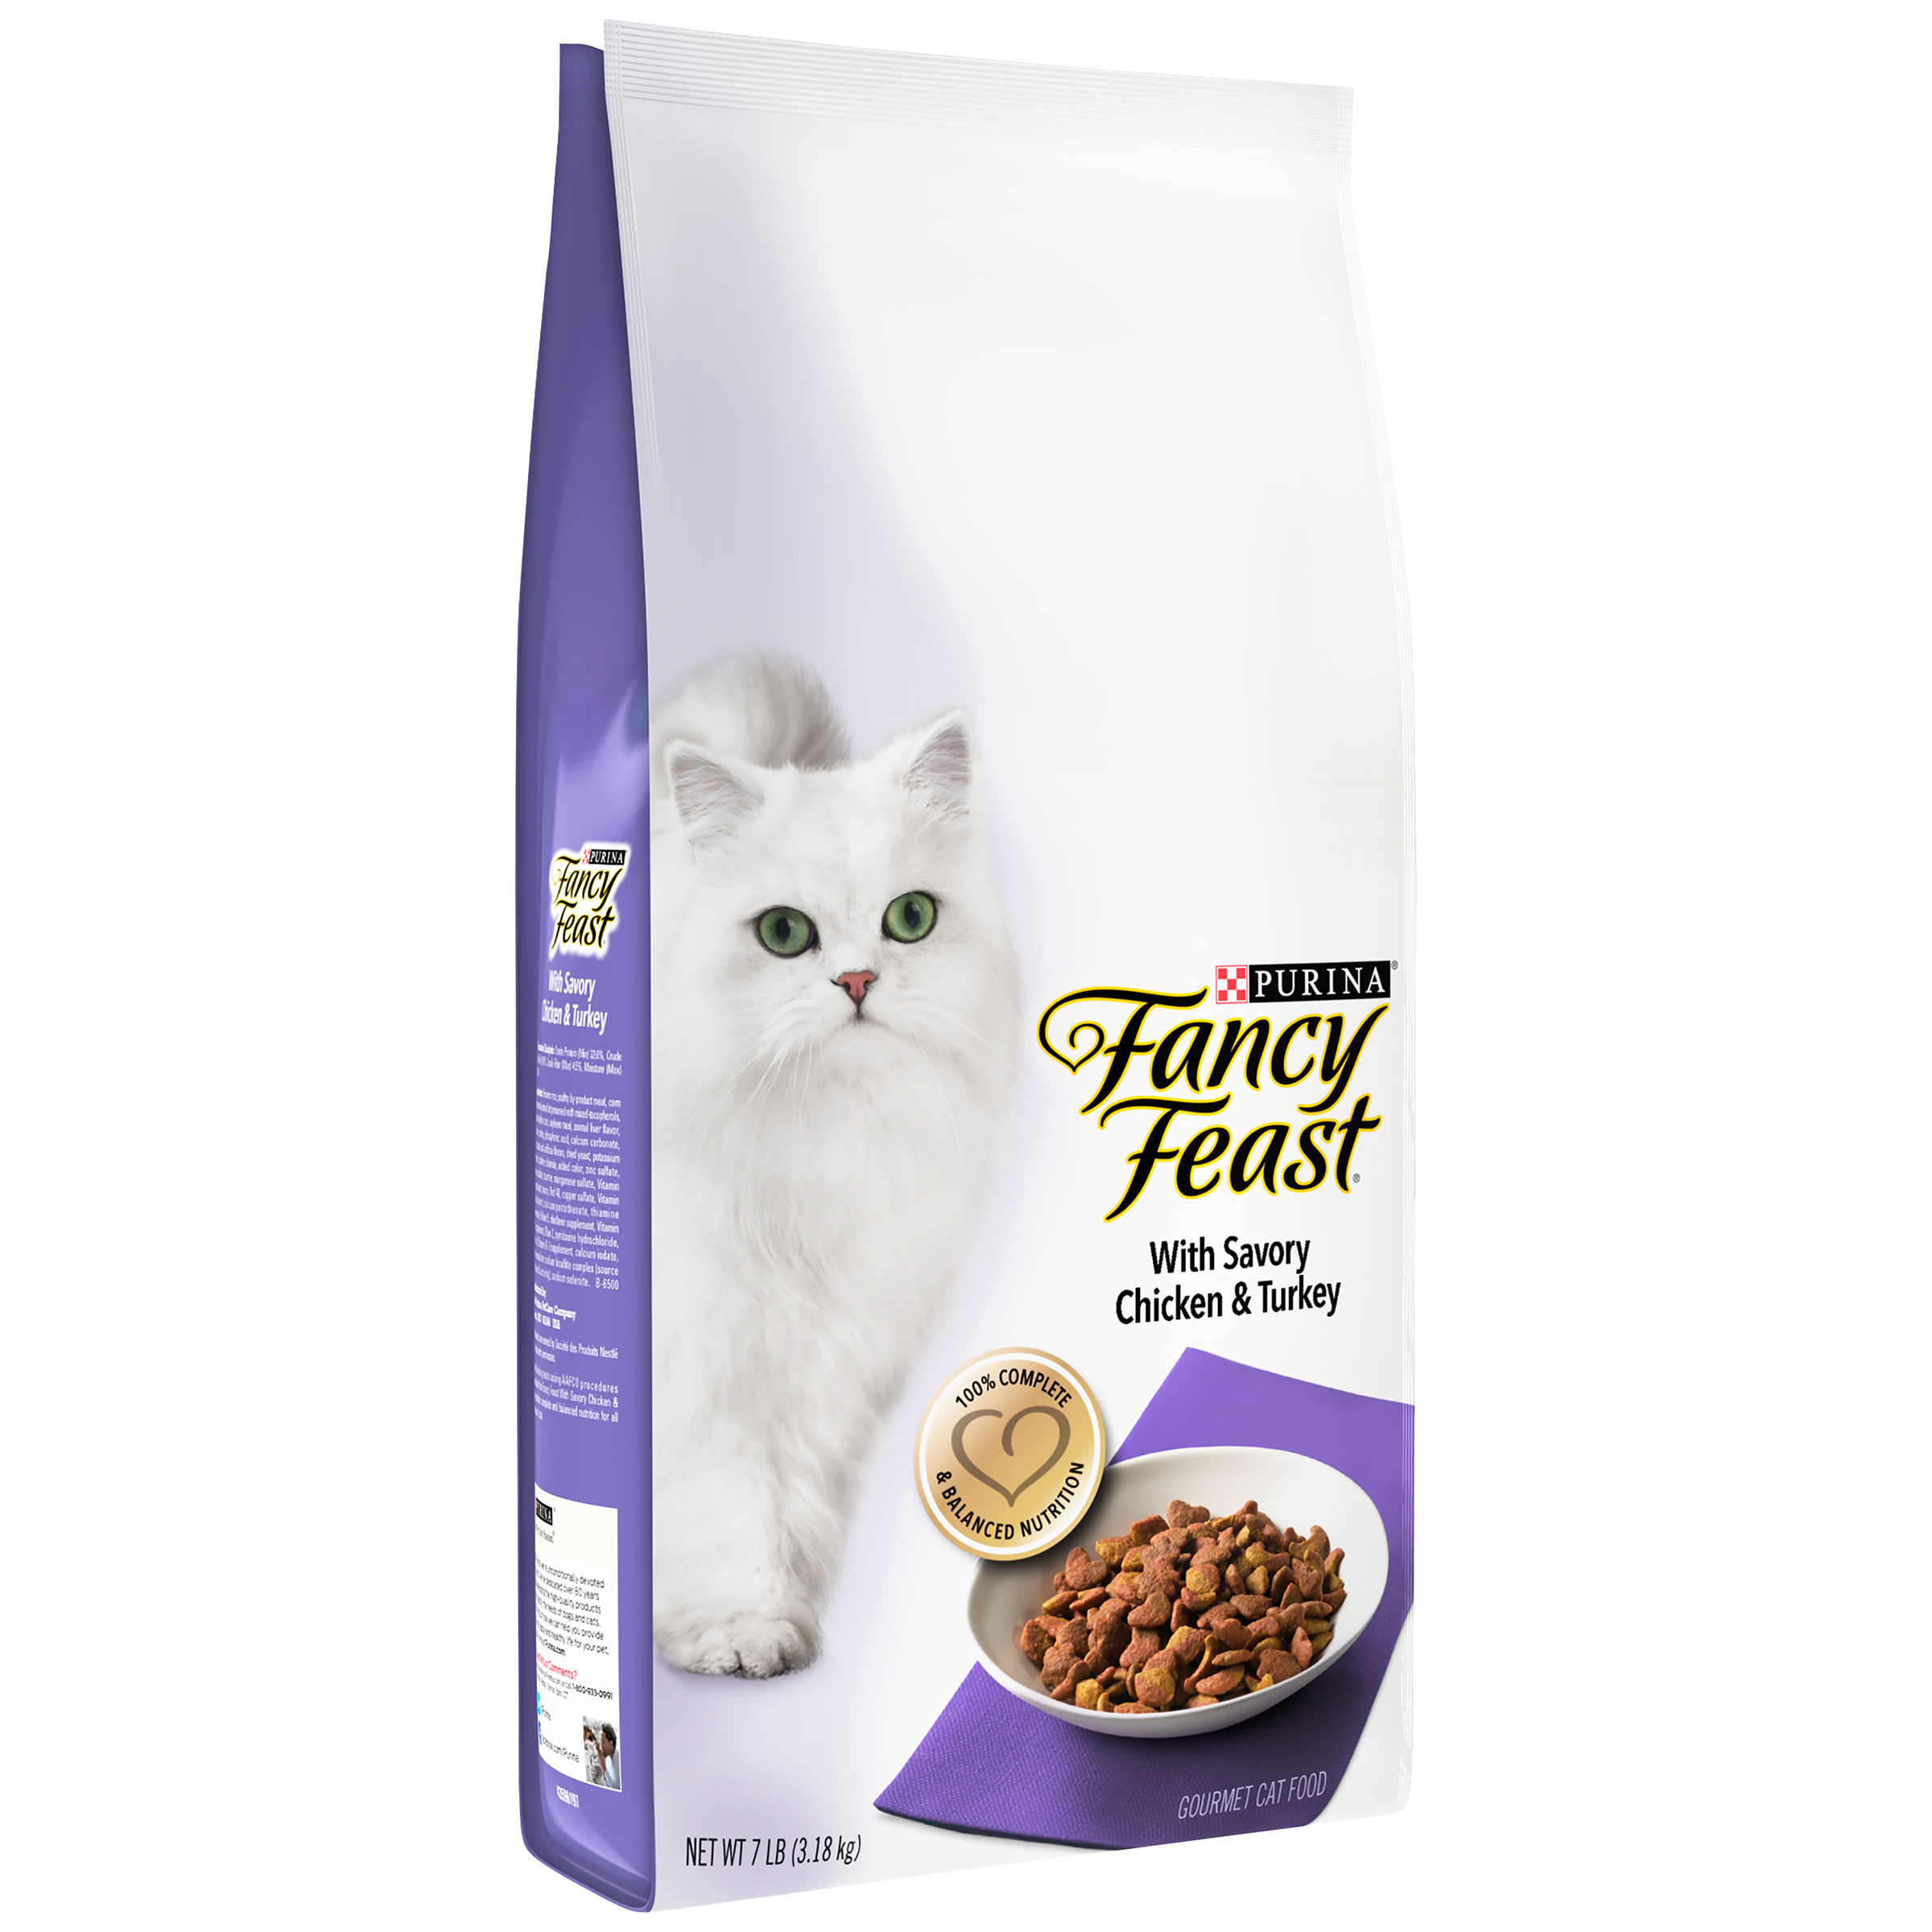 Purina Fancy Feast with Savory Chicken & Turkey Cat Food 7 lb. Bag